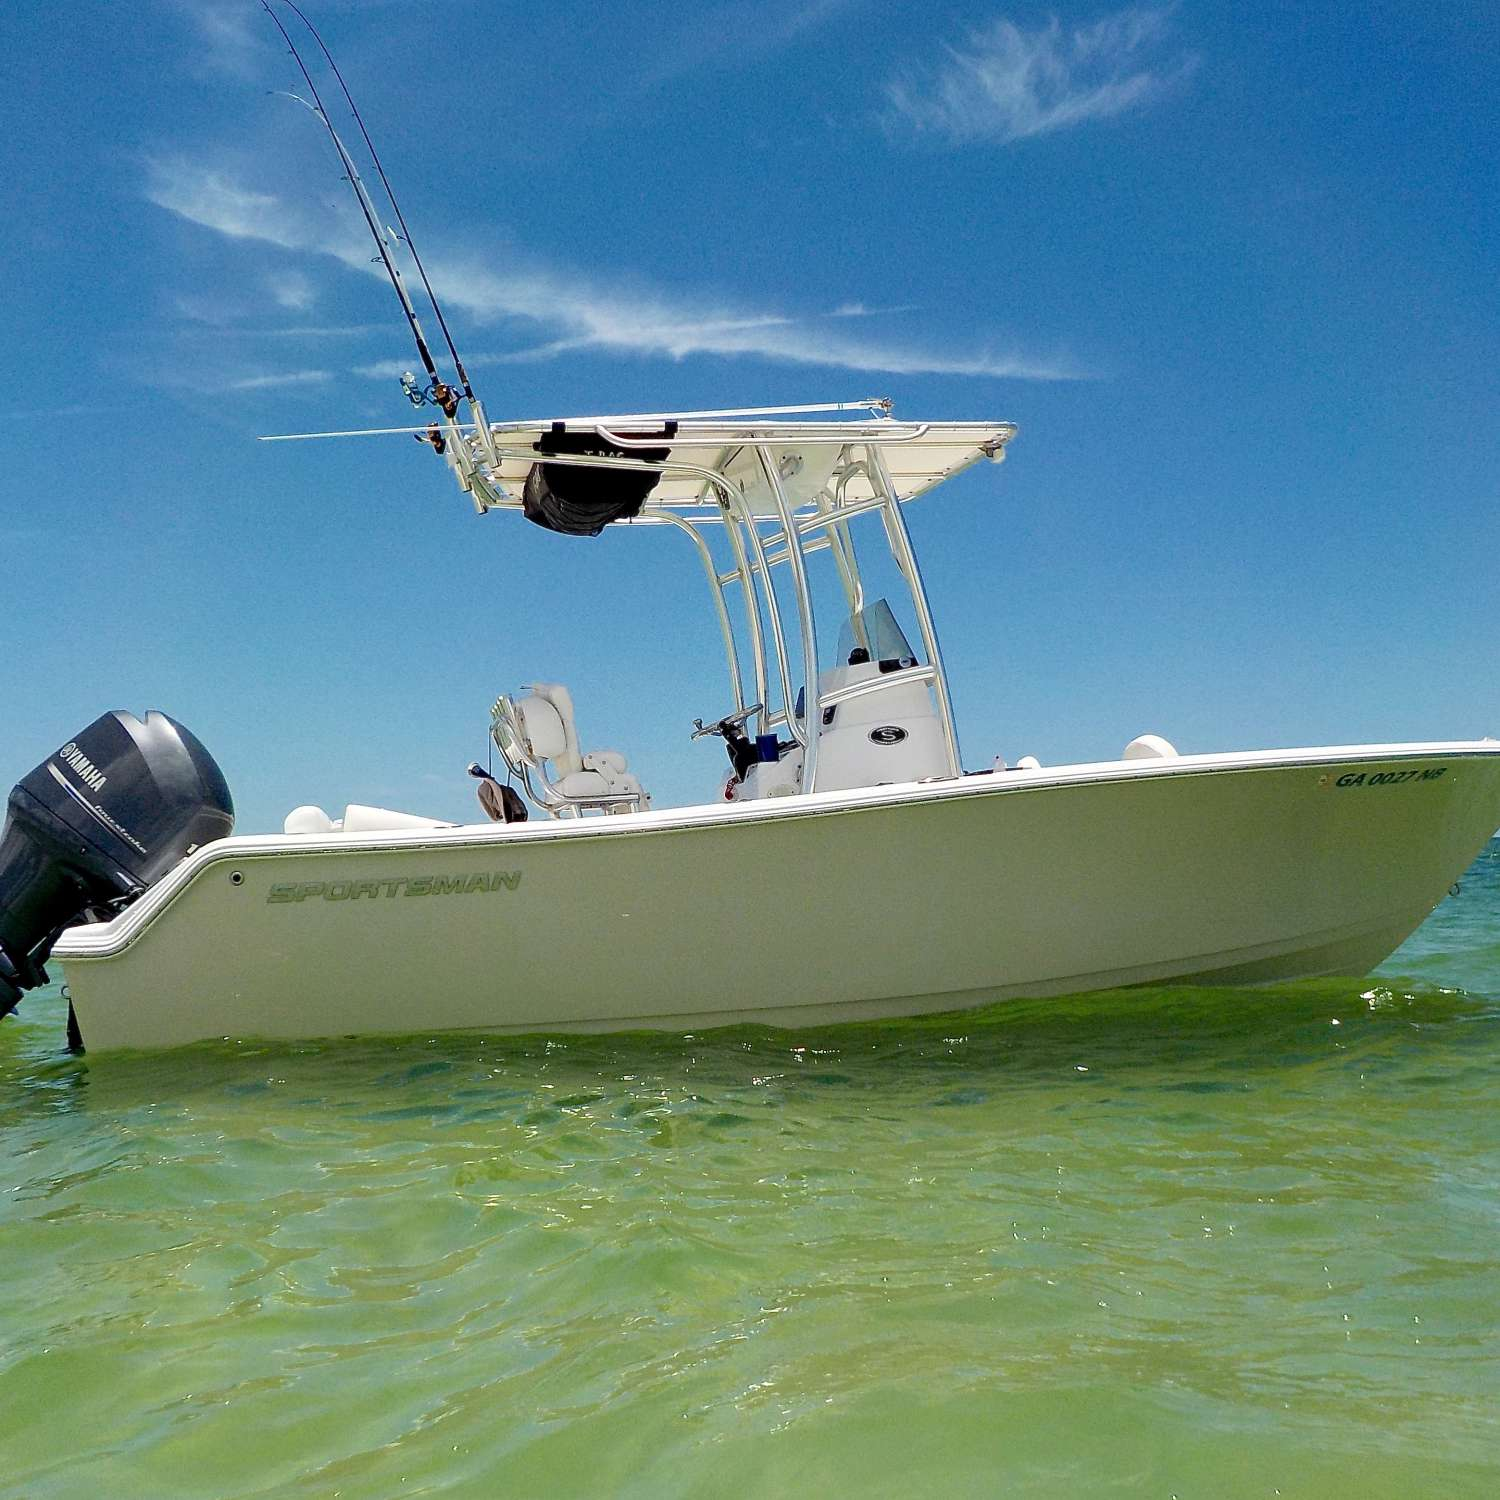 Title: Casey Key - On board their Sportsman Heritage 211 Center Console - Location: Sarasota, Florida. Participating in the Photo Contest #SportsmanAugust2017